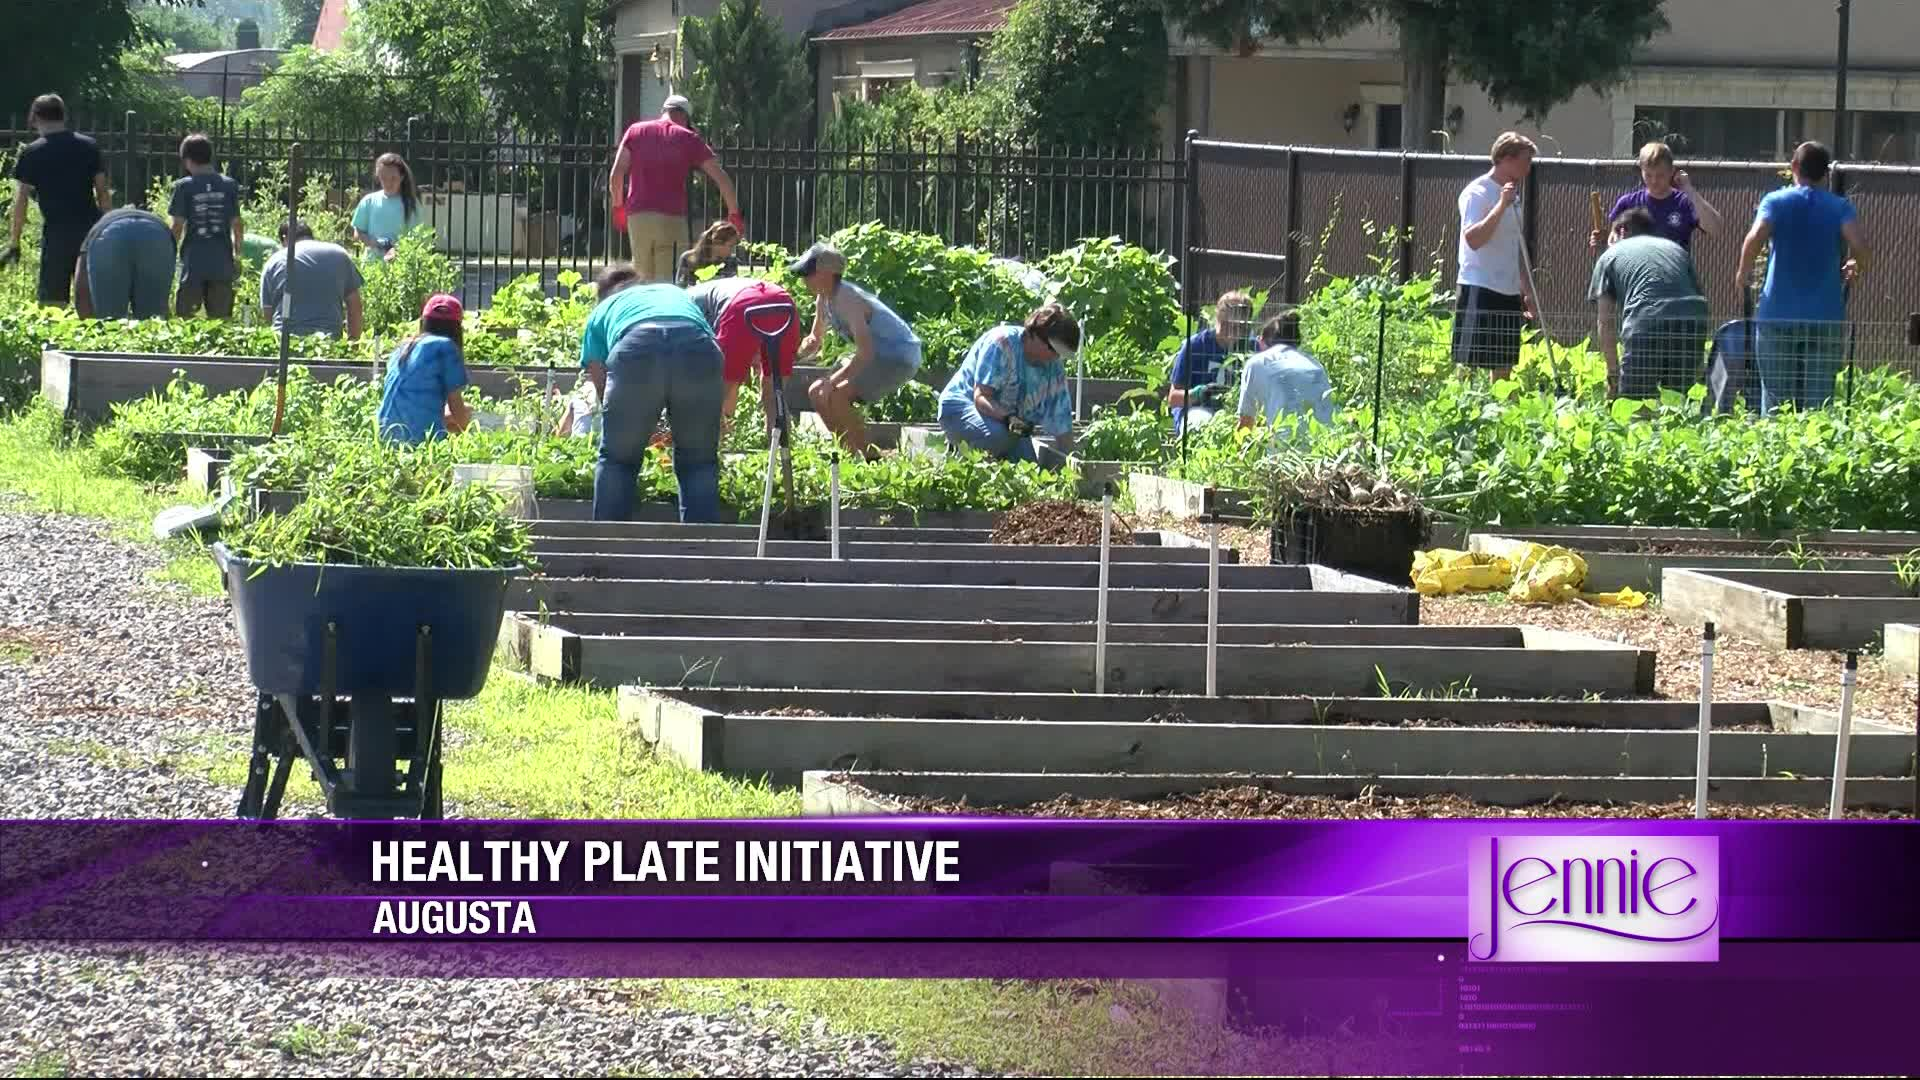 JENNIE: Healthy Plate initiative at local food bank